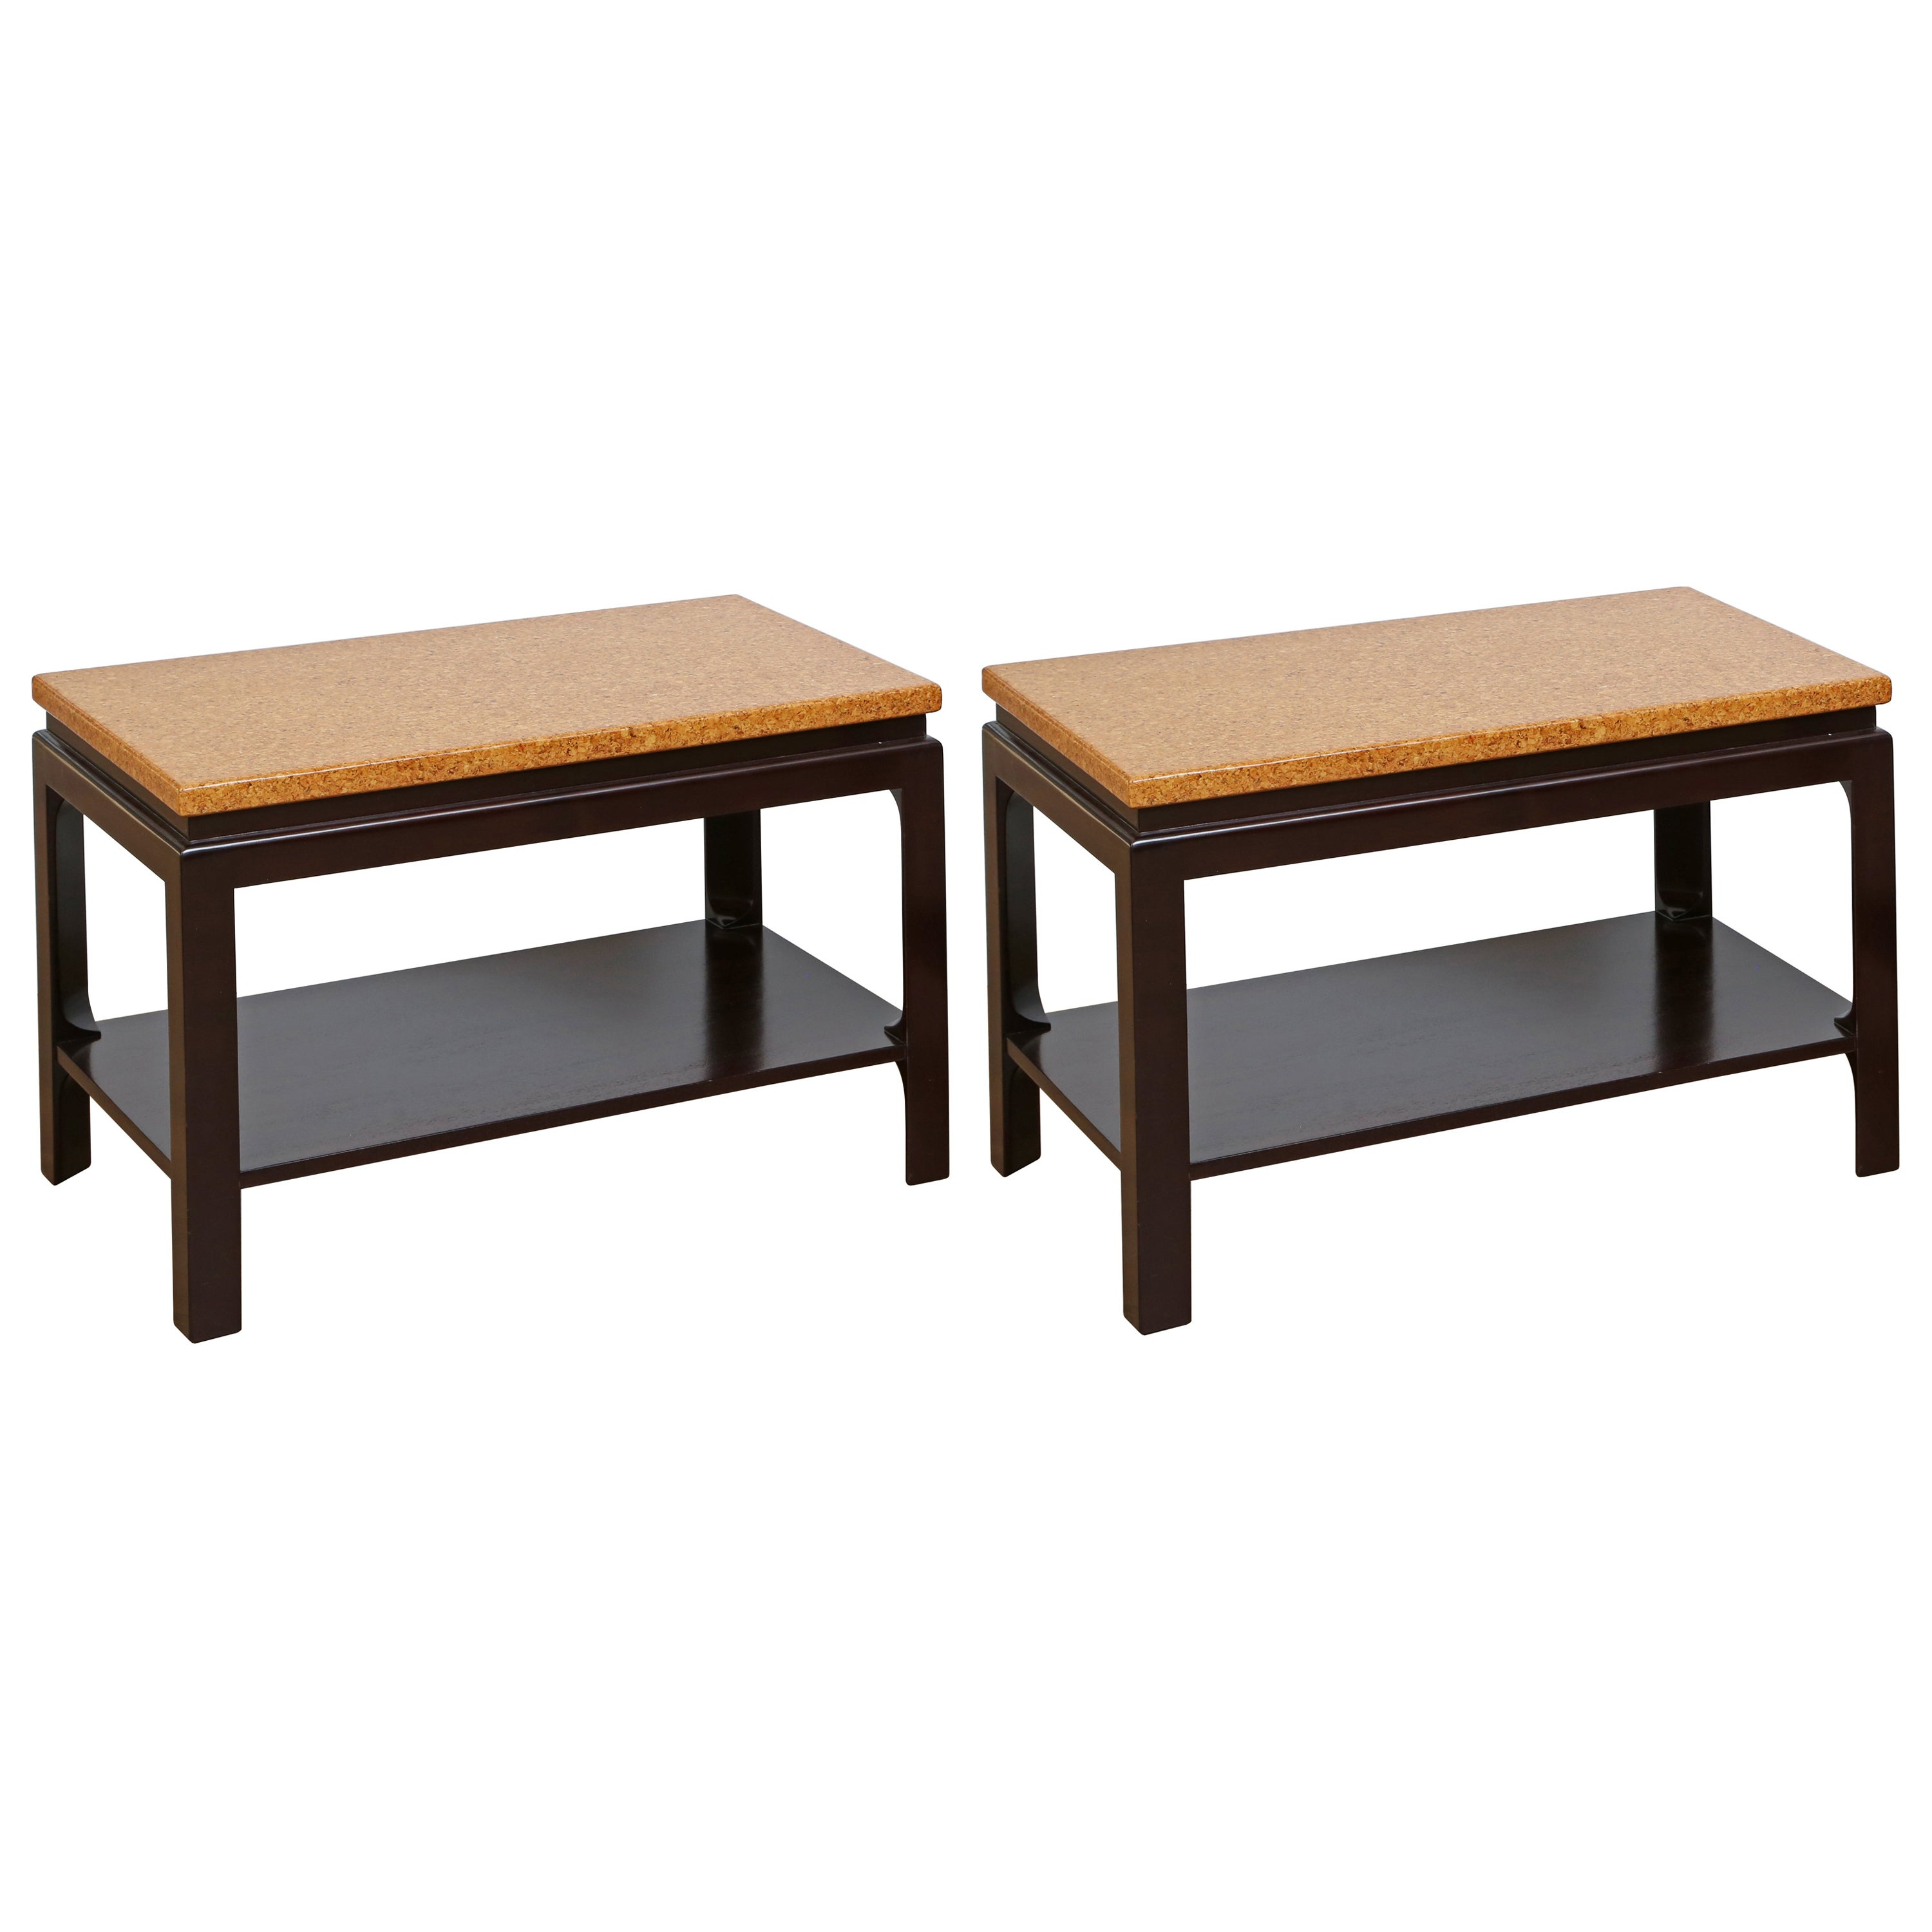 Pair of Two-Tier Cork Top End Tables by Paul Frankl